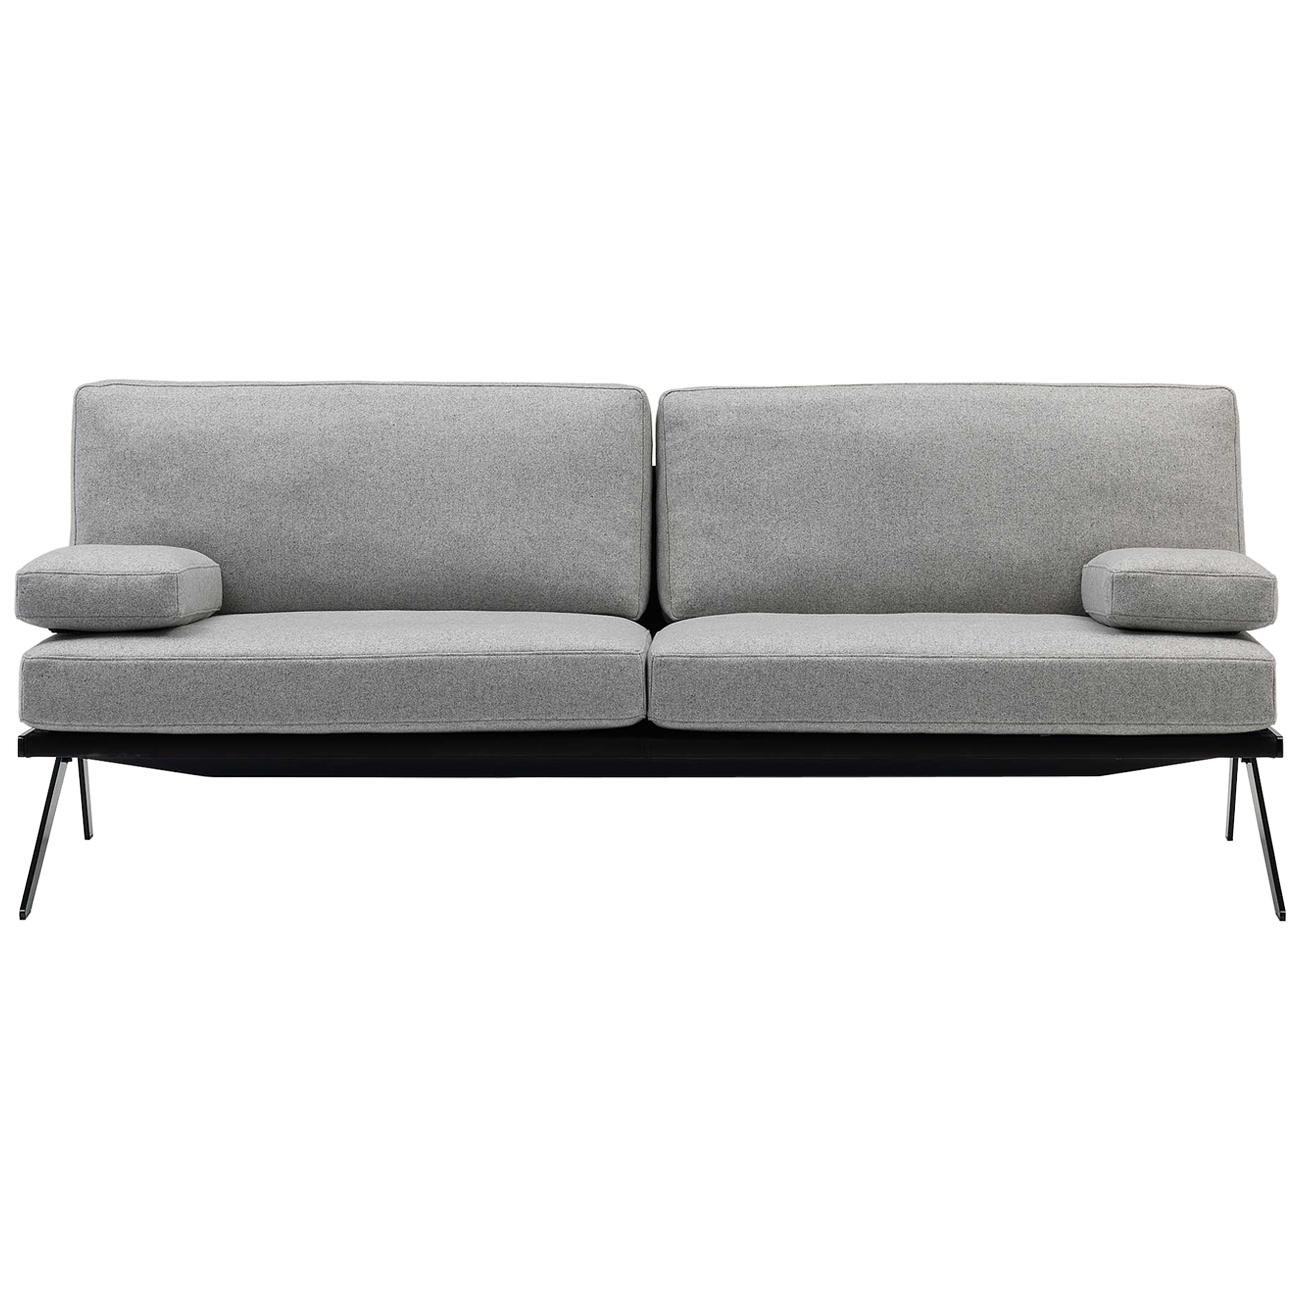 De Sede DS-60/52 Sofa in Grey Fabric by Gordon Guillaumier